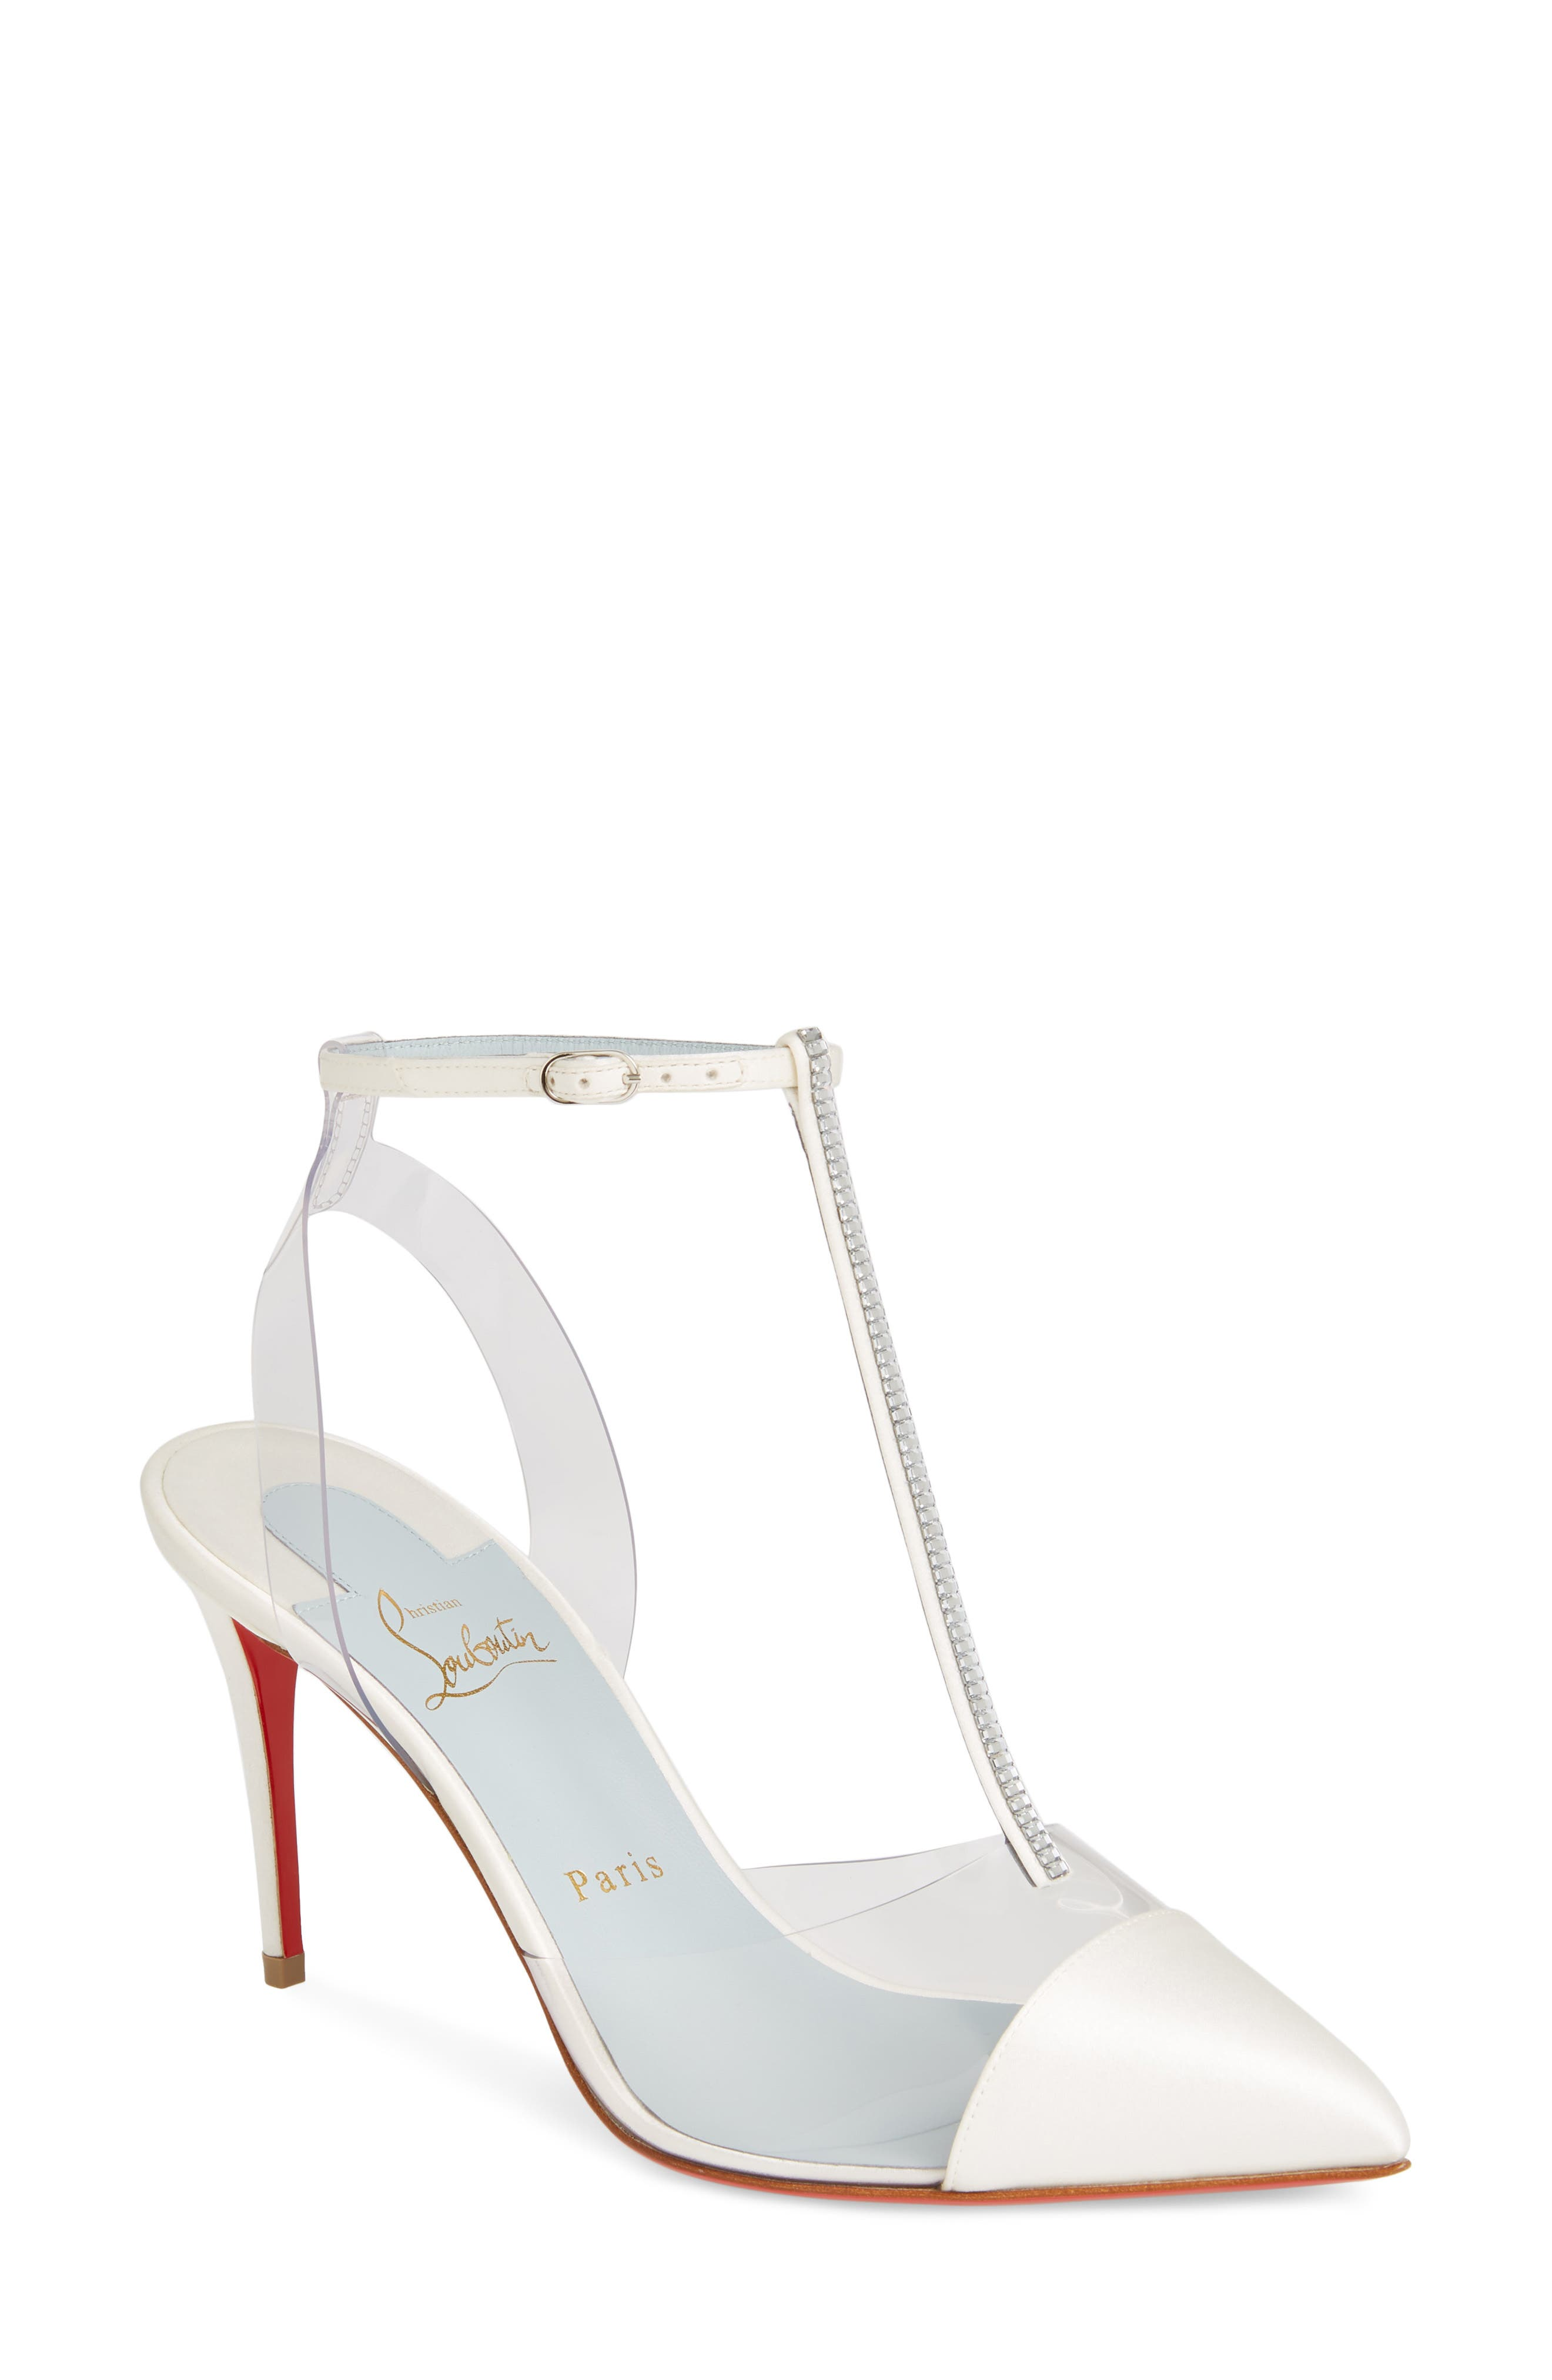 CHRISTIAN LOUBOUTIN,                             Nosy Jewel Clear Pump,                             Main thumbnail 1, color,                             OFF WHITE